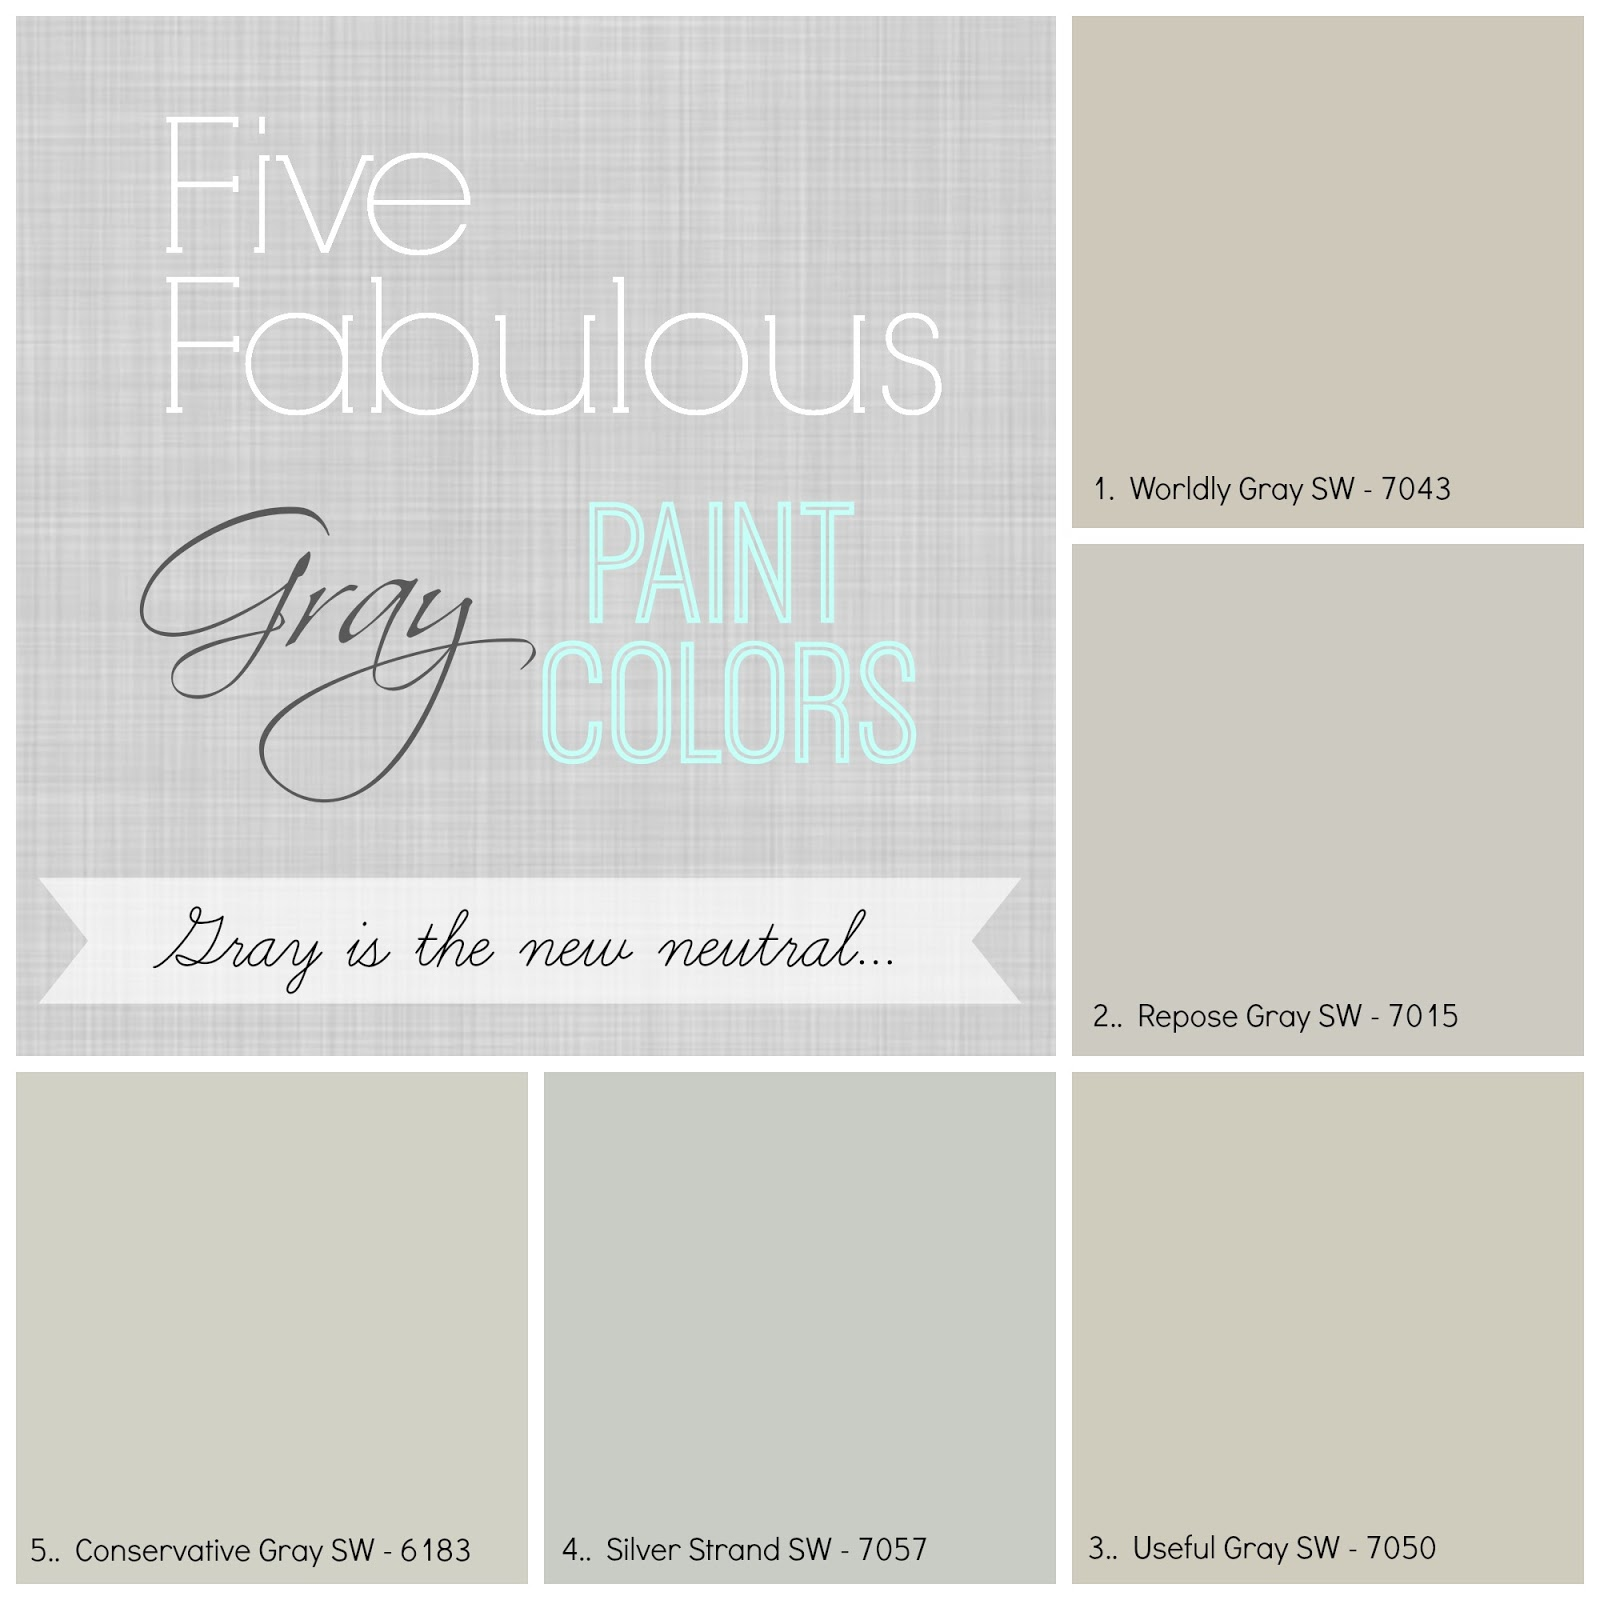 I Ve Used All These Colors In My Client S Homes And Have To Say There Been No Complaints Worldly Gray Is One Of The Warmest Grays With A Khaki